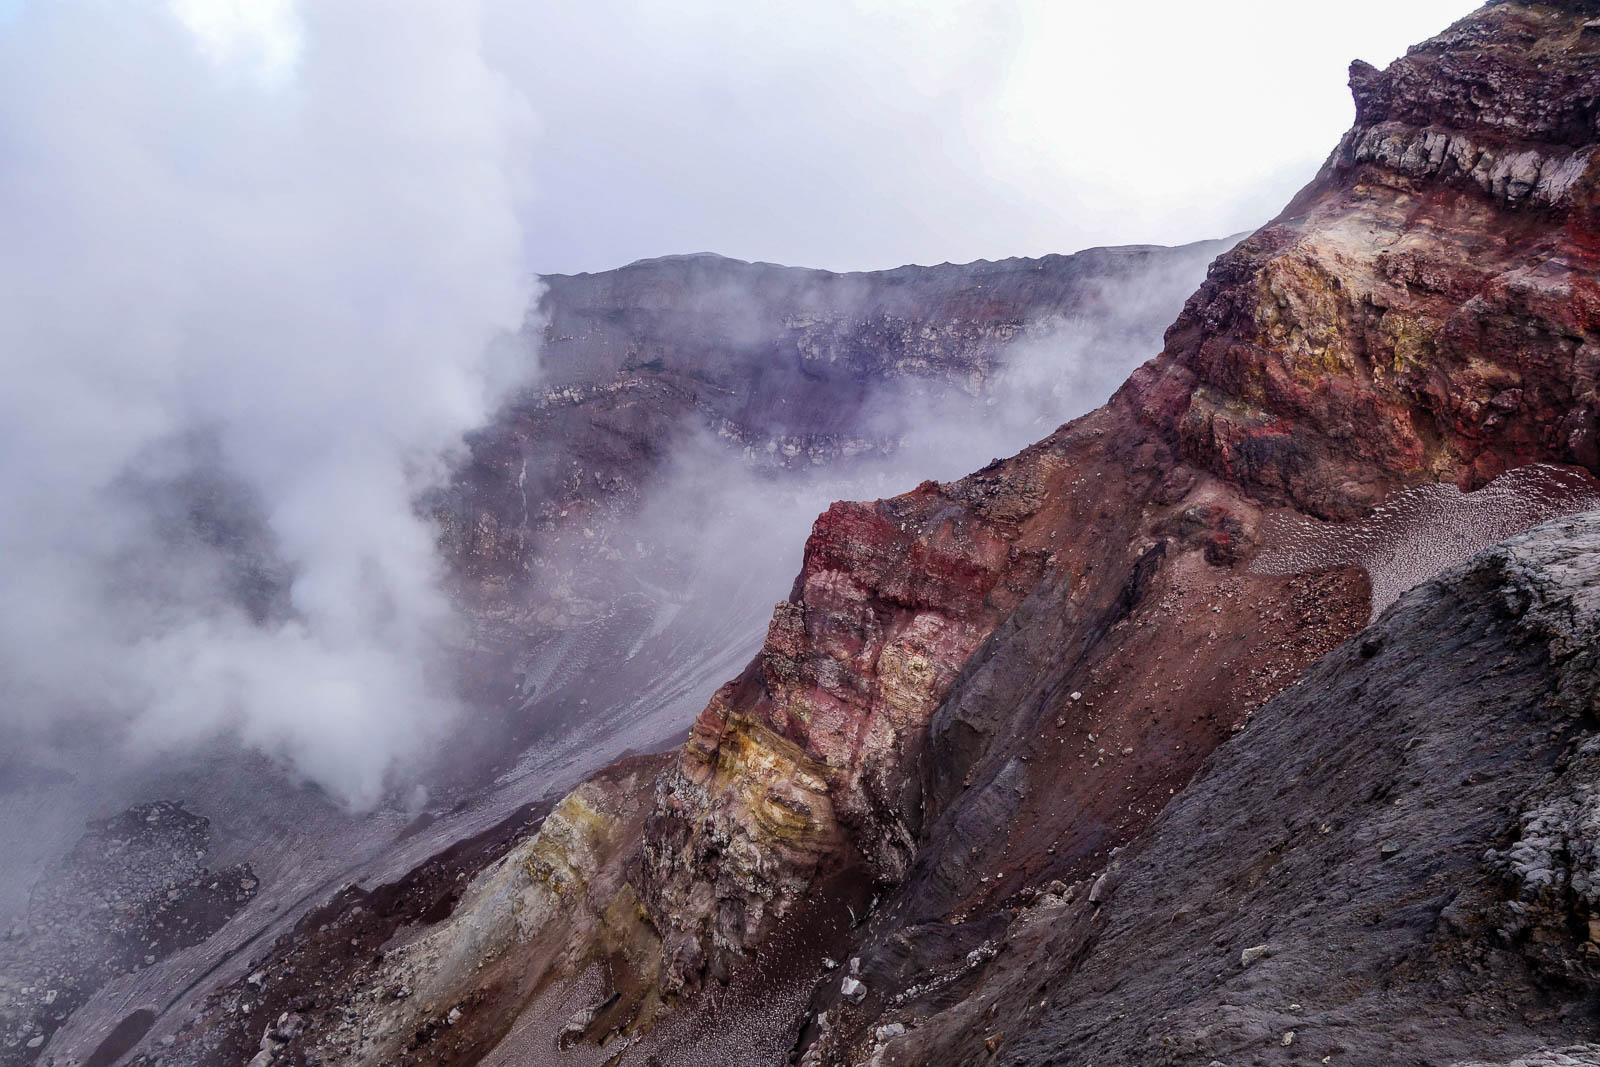 kamchatka-2015-volcanoes-39